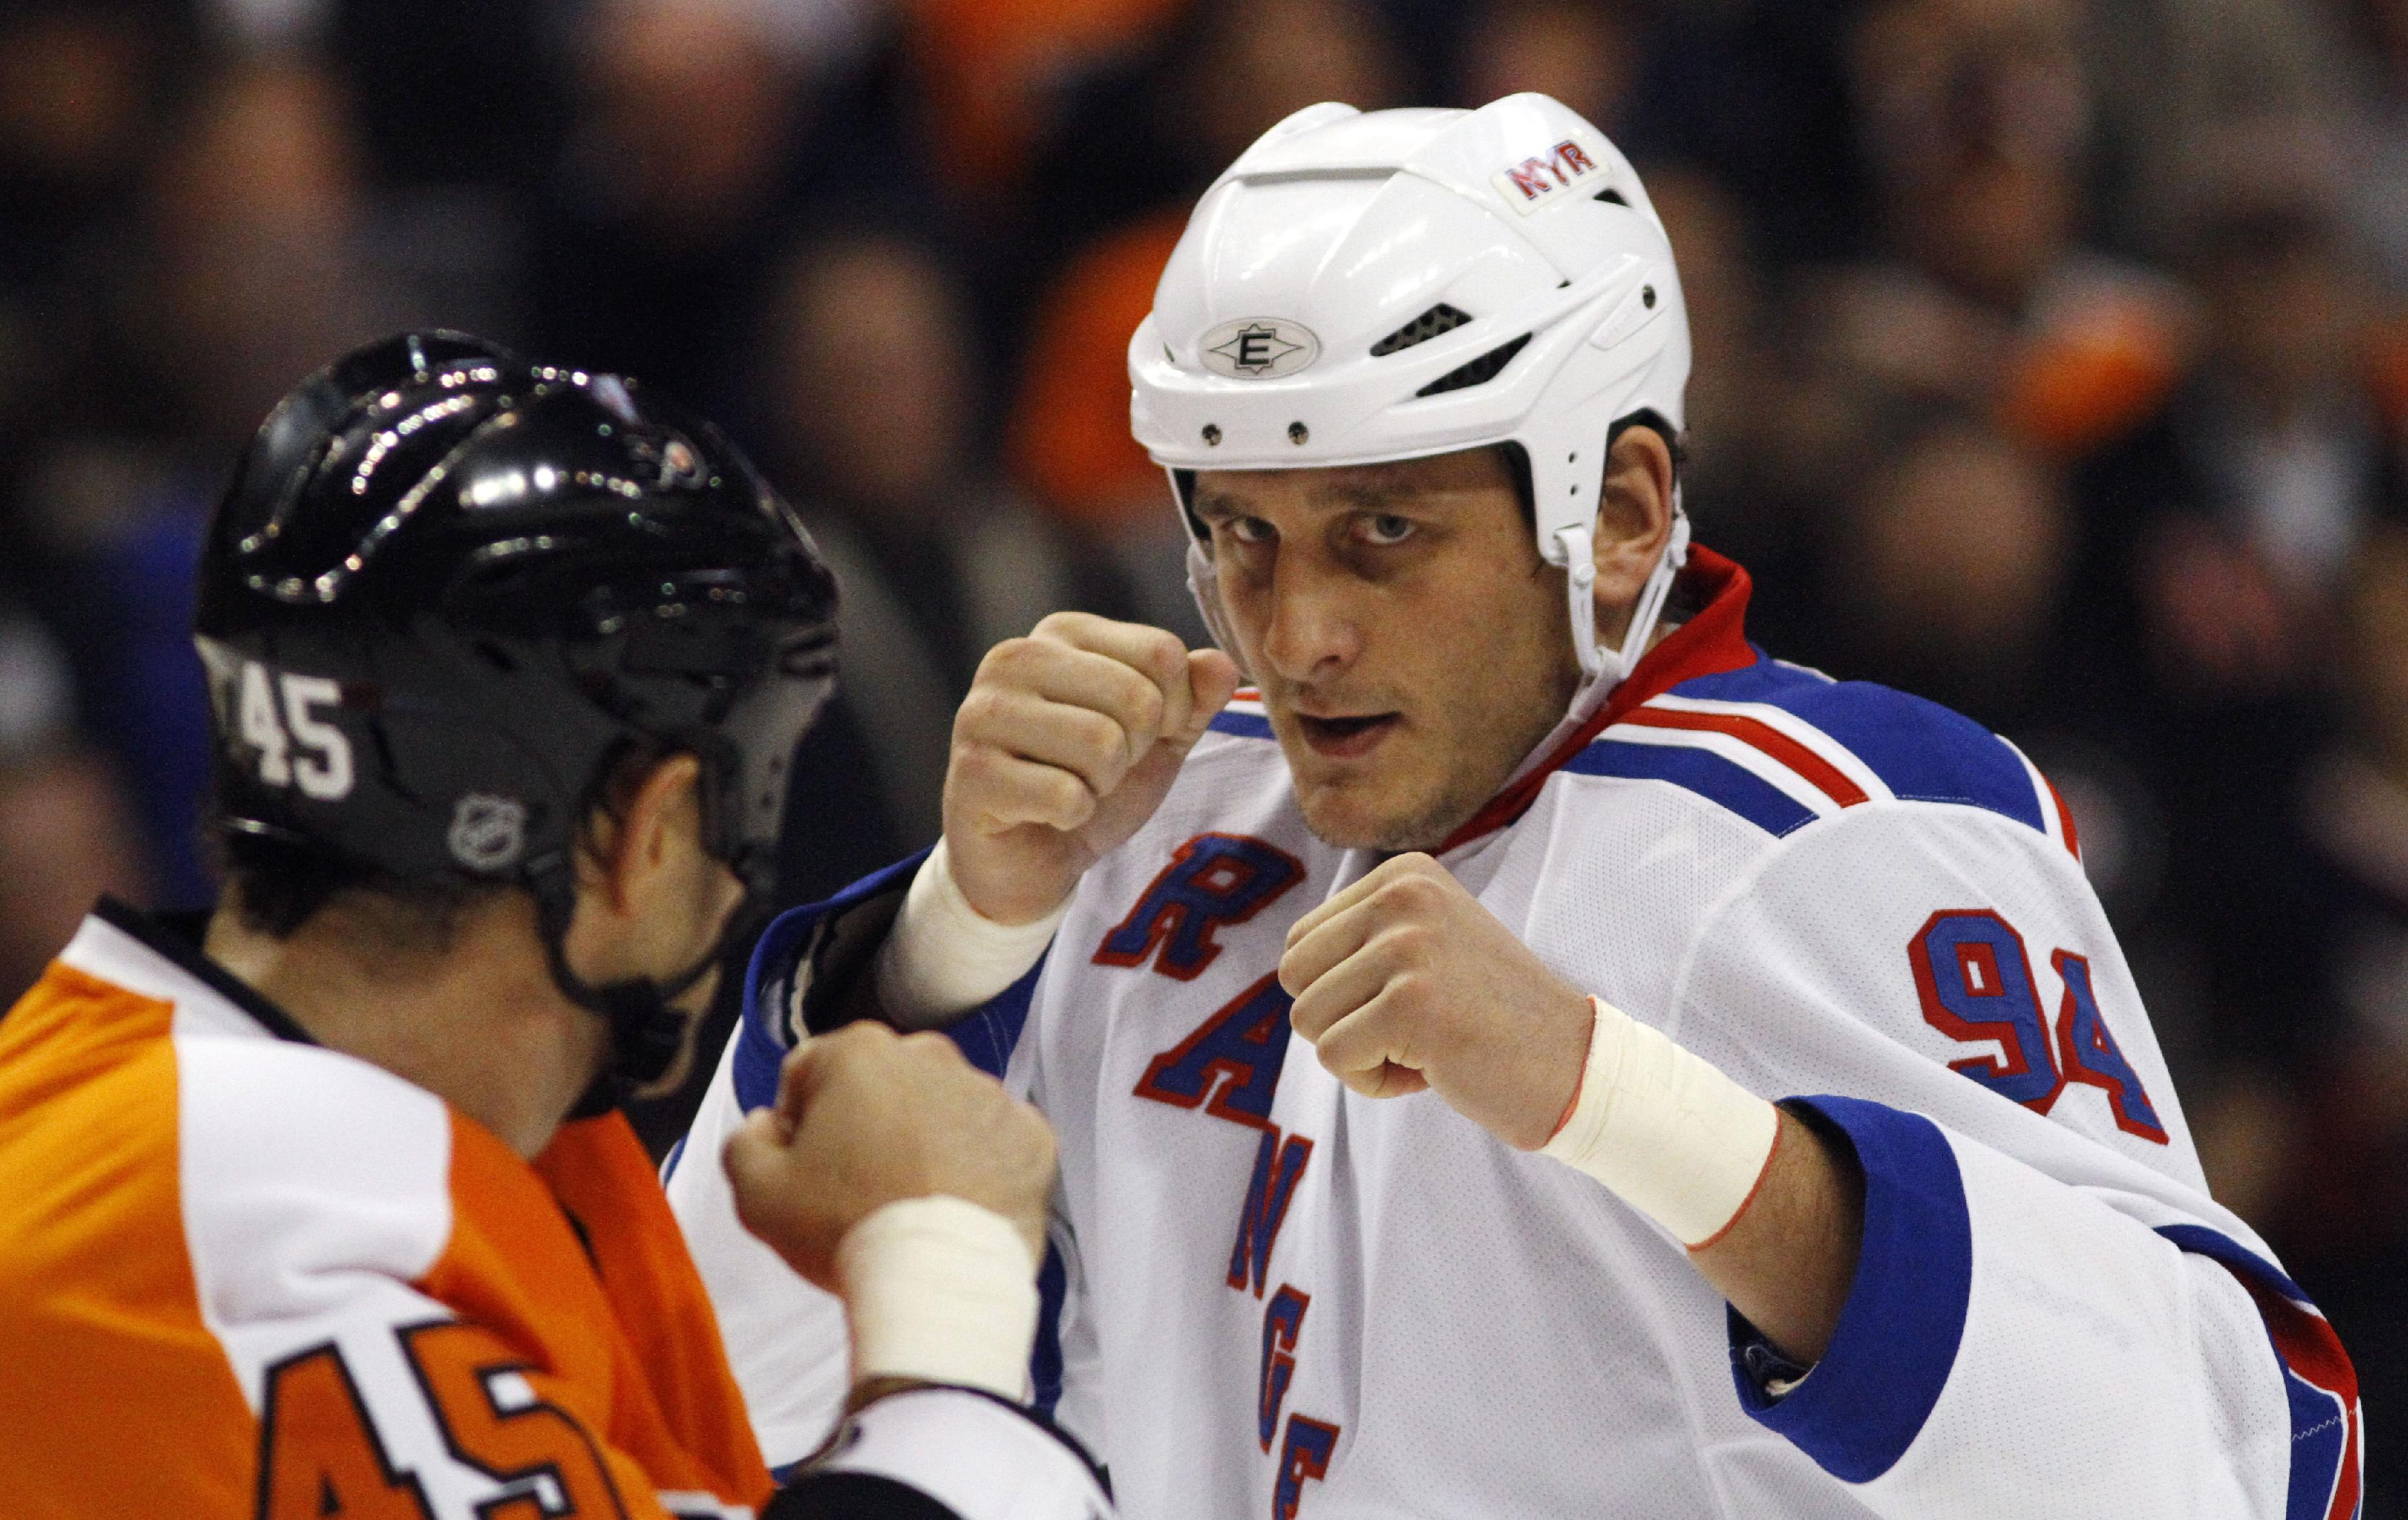 Doctors Allowed Boogaard To Play After Failed Drug Tests: Report